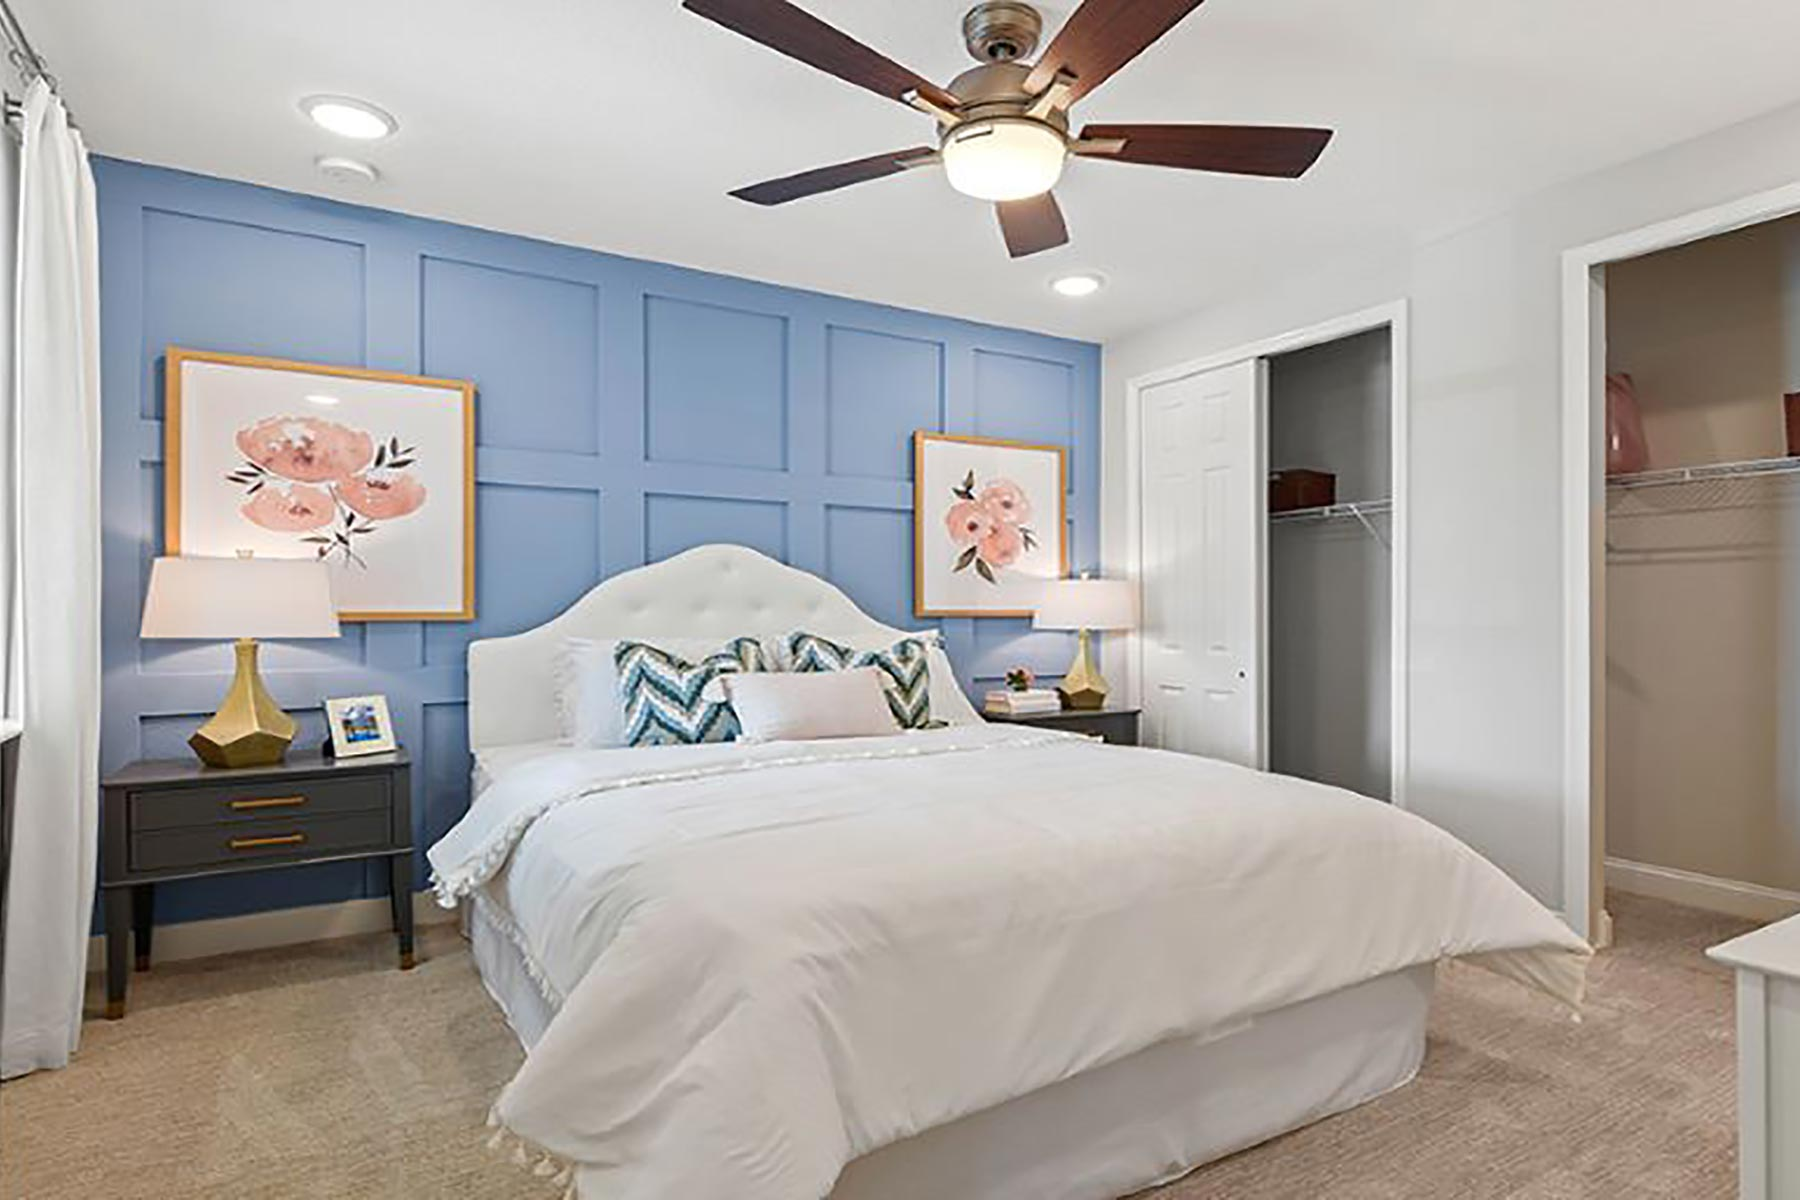 River Plan Bedroom at RiverTown - WaterSong in St. Johns Florida by Mattamy Homes